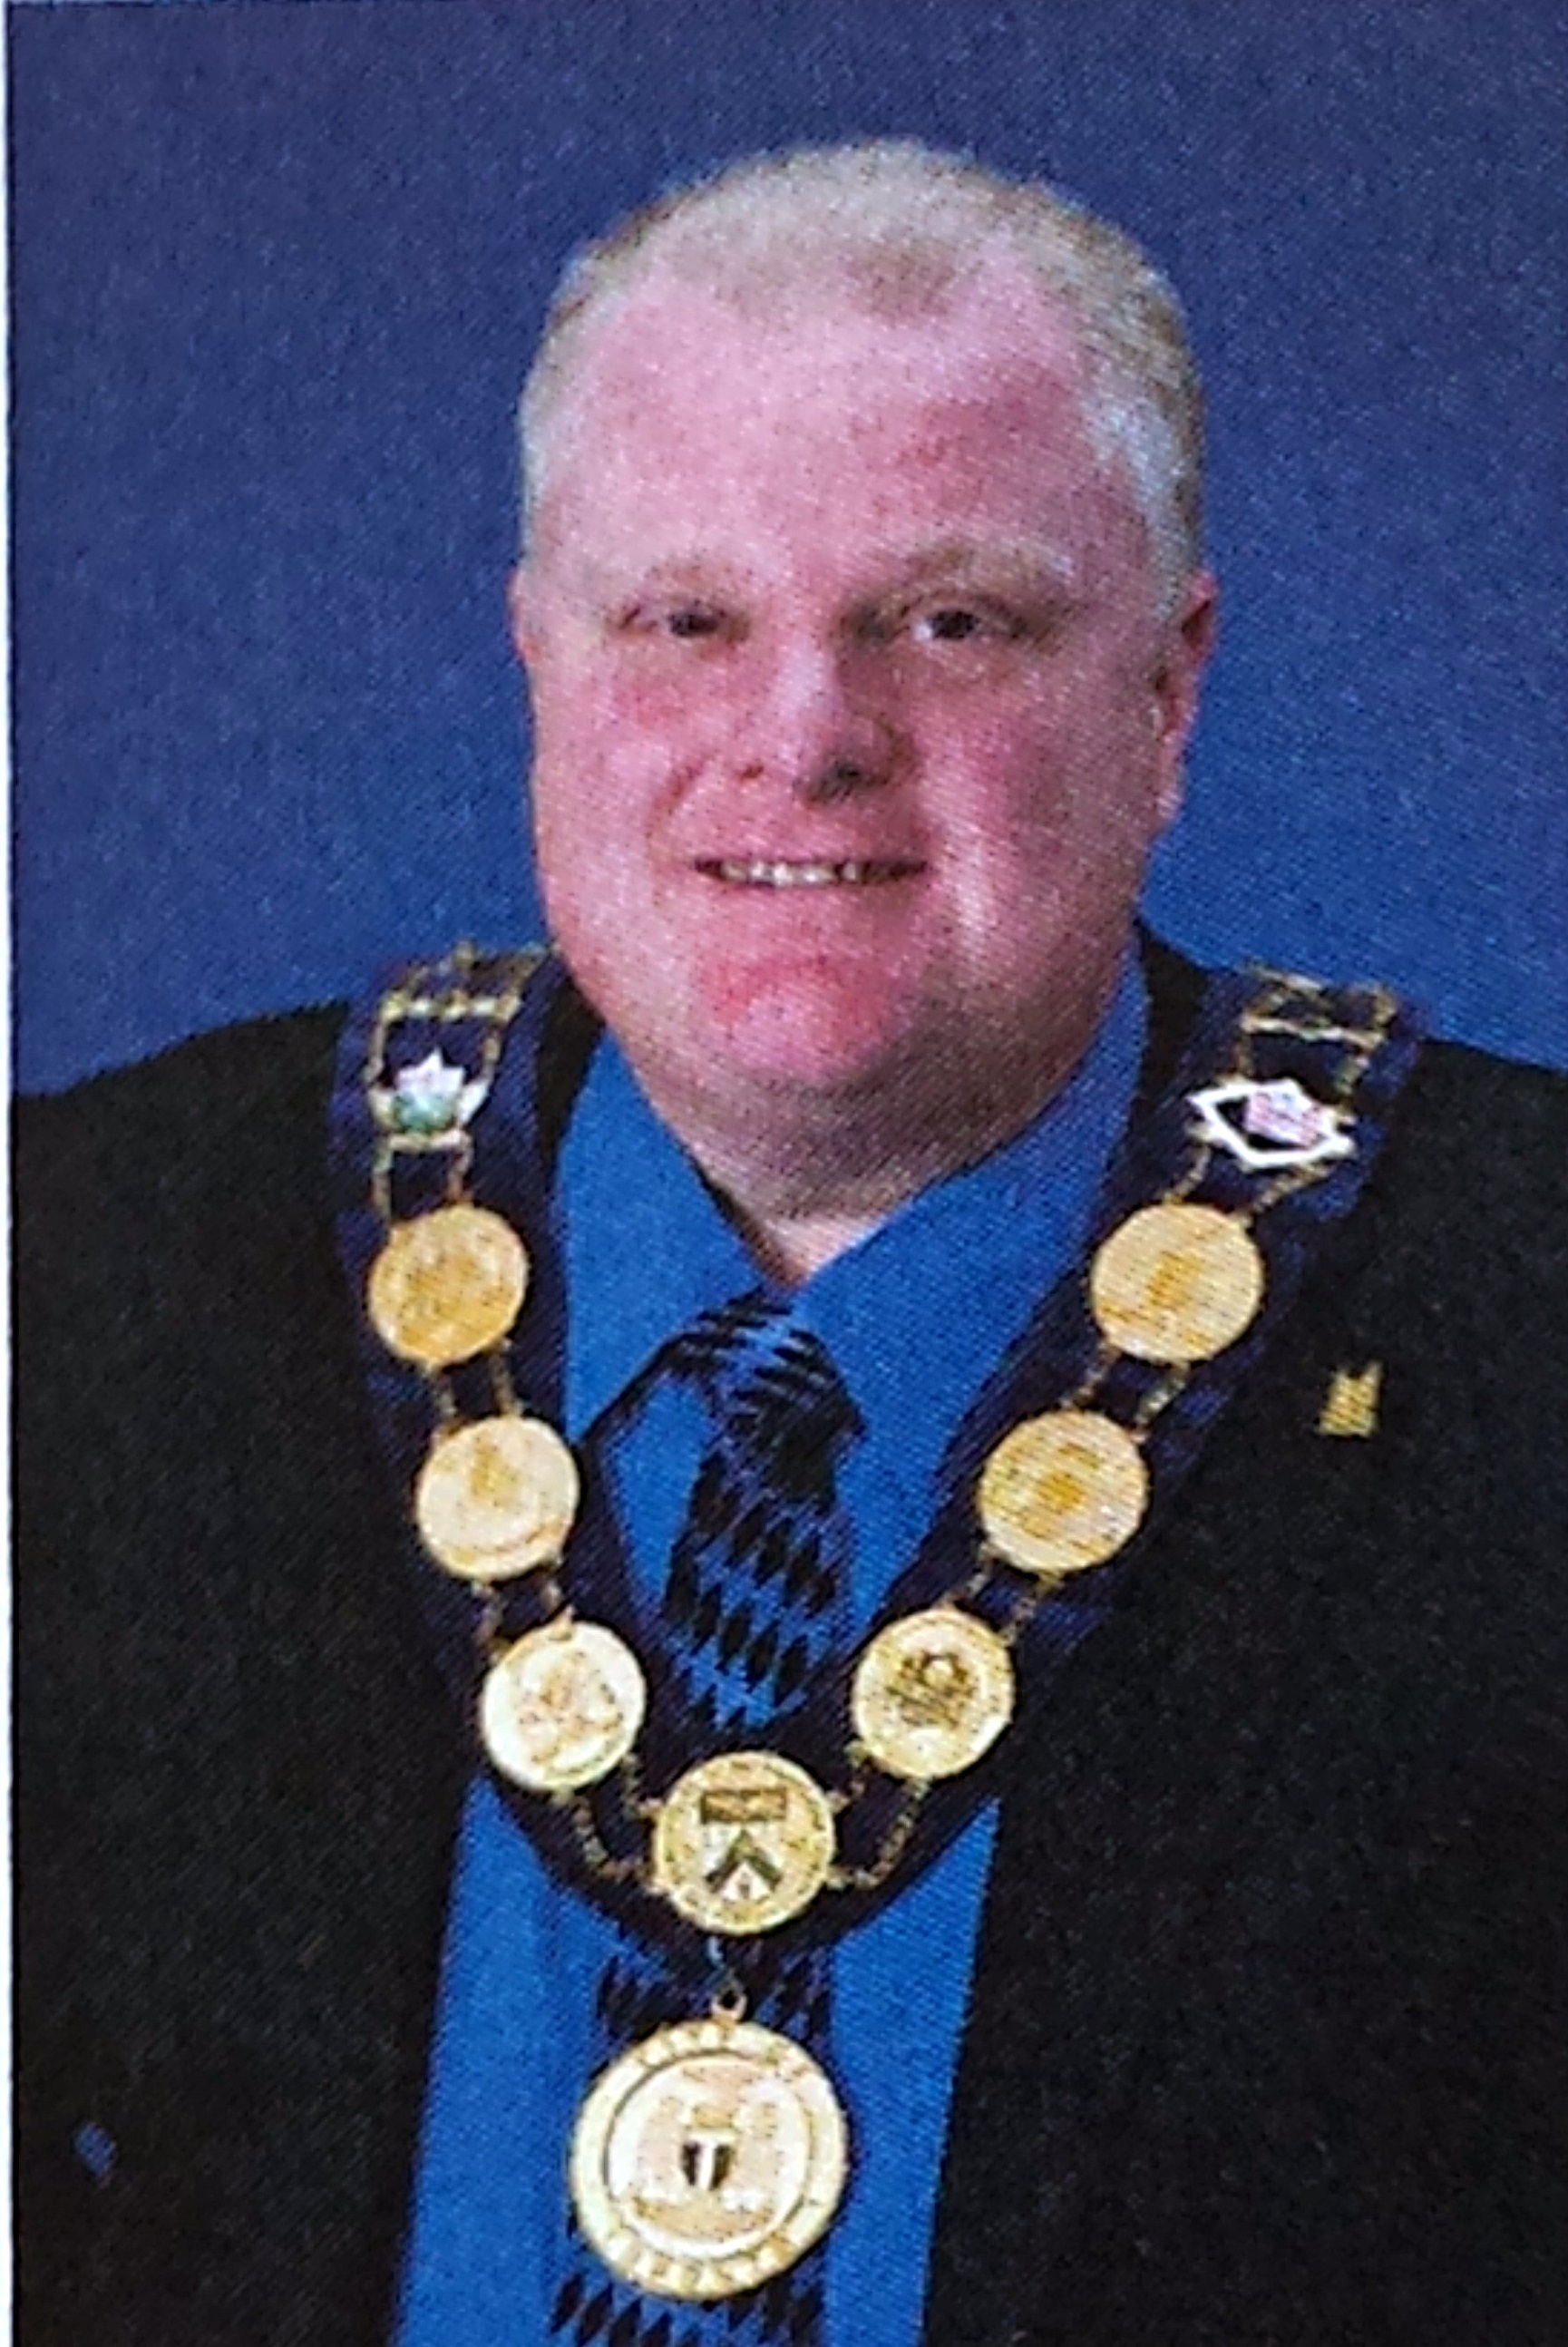 Toronto Mayor Rob Ford accused crack cocaine, among other unbecoming things.